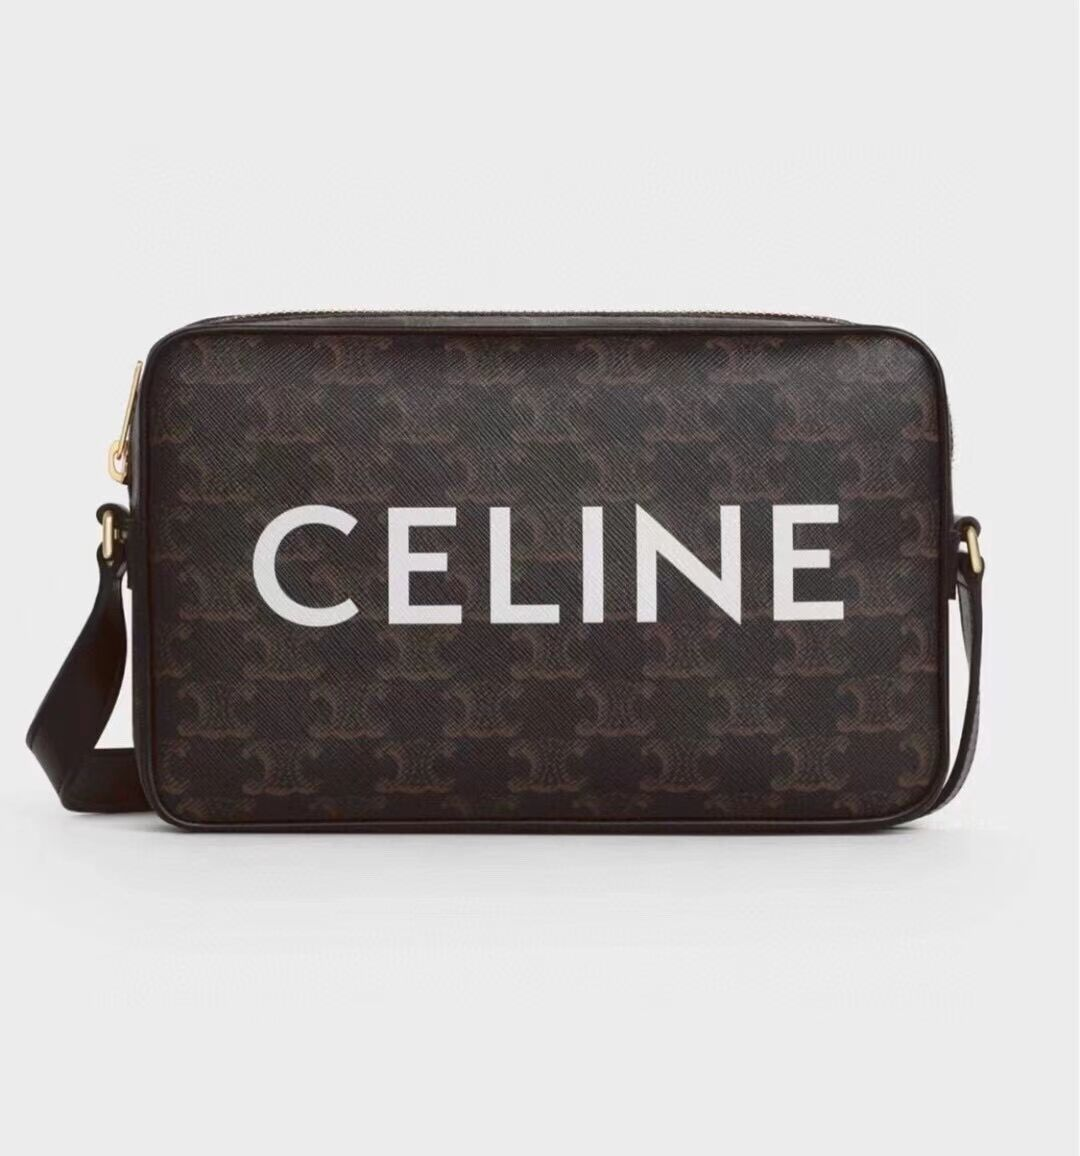 Celine MINI FOLCO BAG IN TRIOMPHE CANVAS CL9450 black